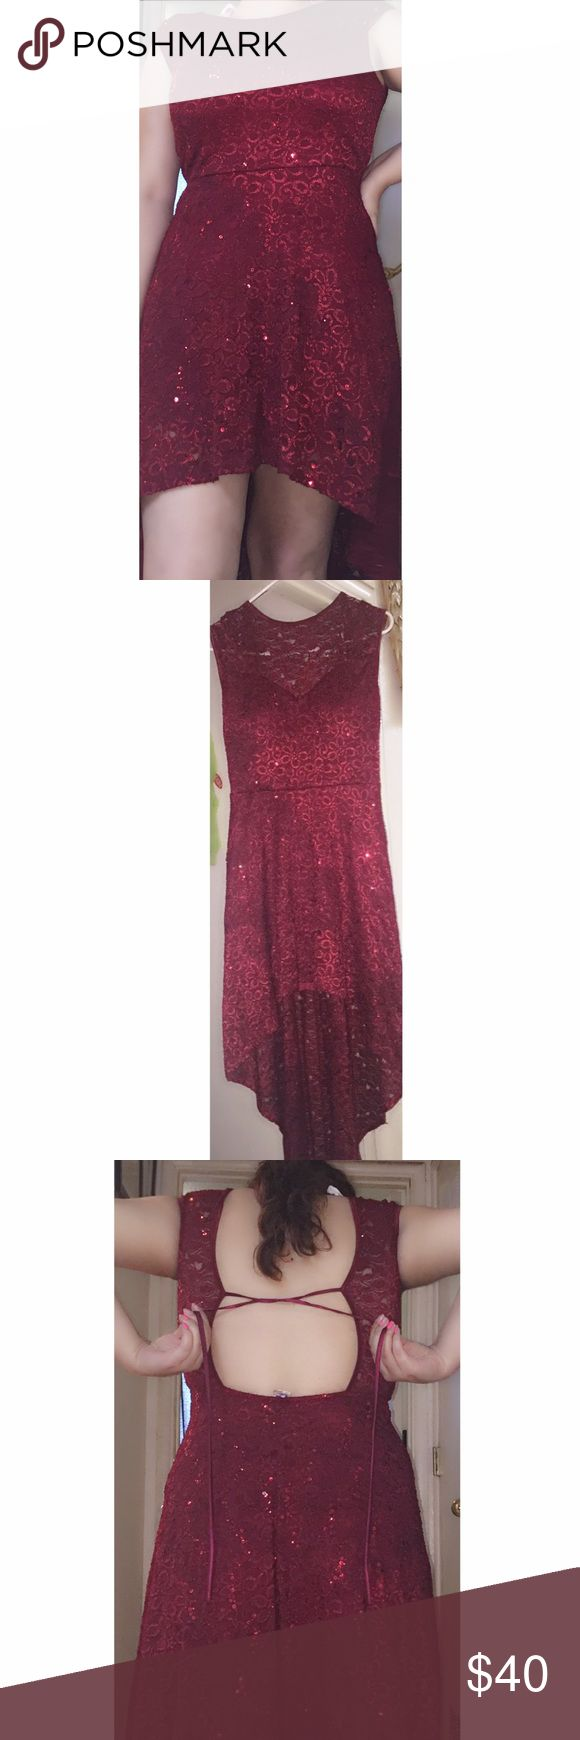 flash sale red dress i absolutely love this dress i just have nowhere to